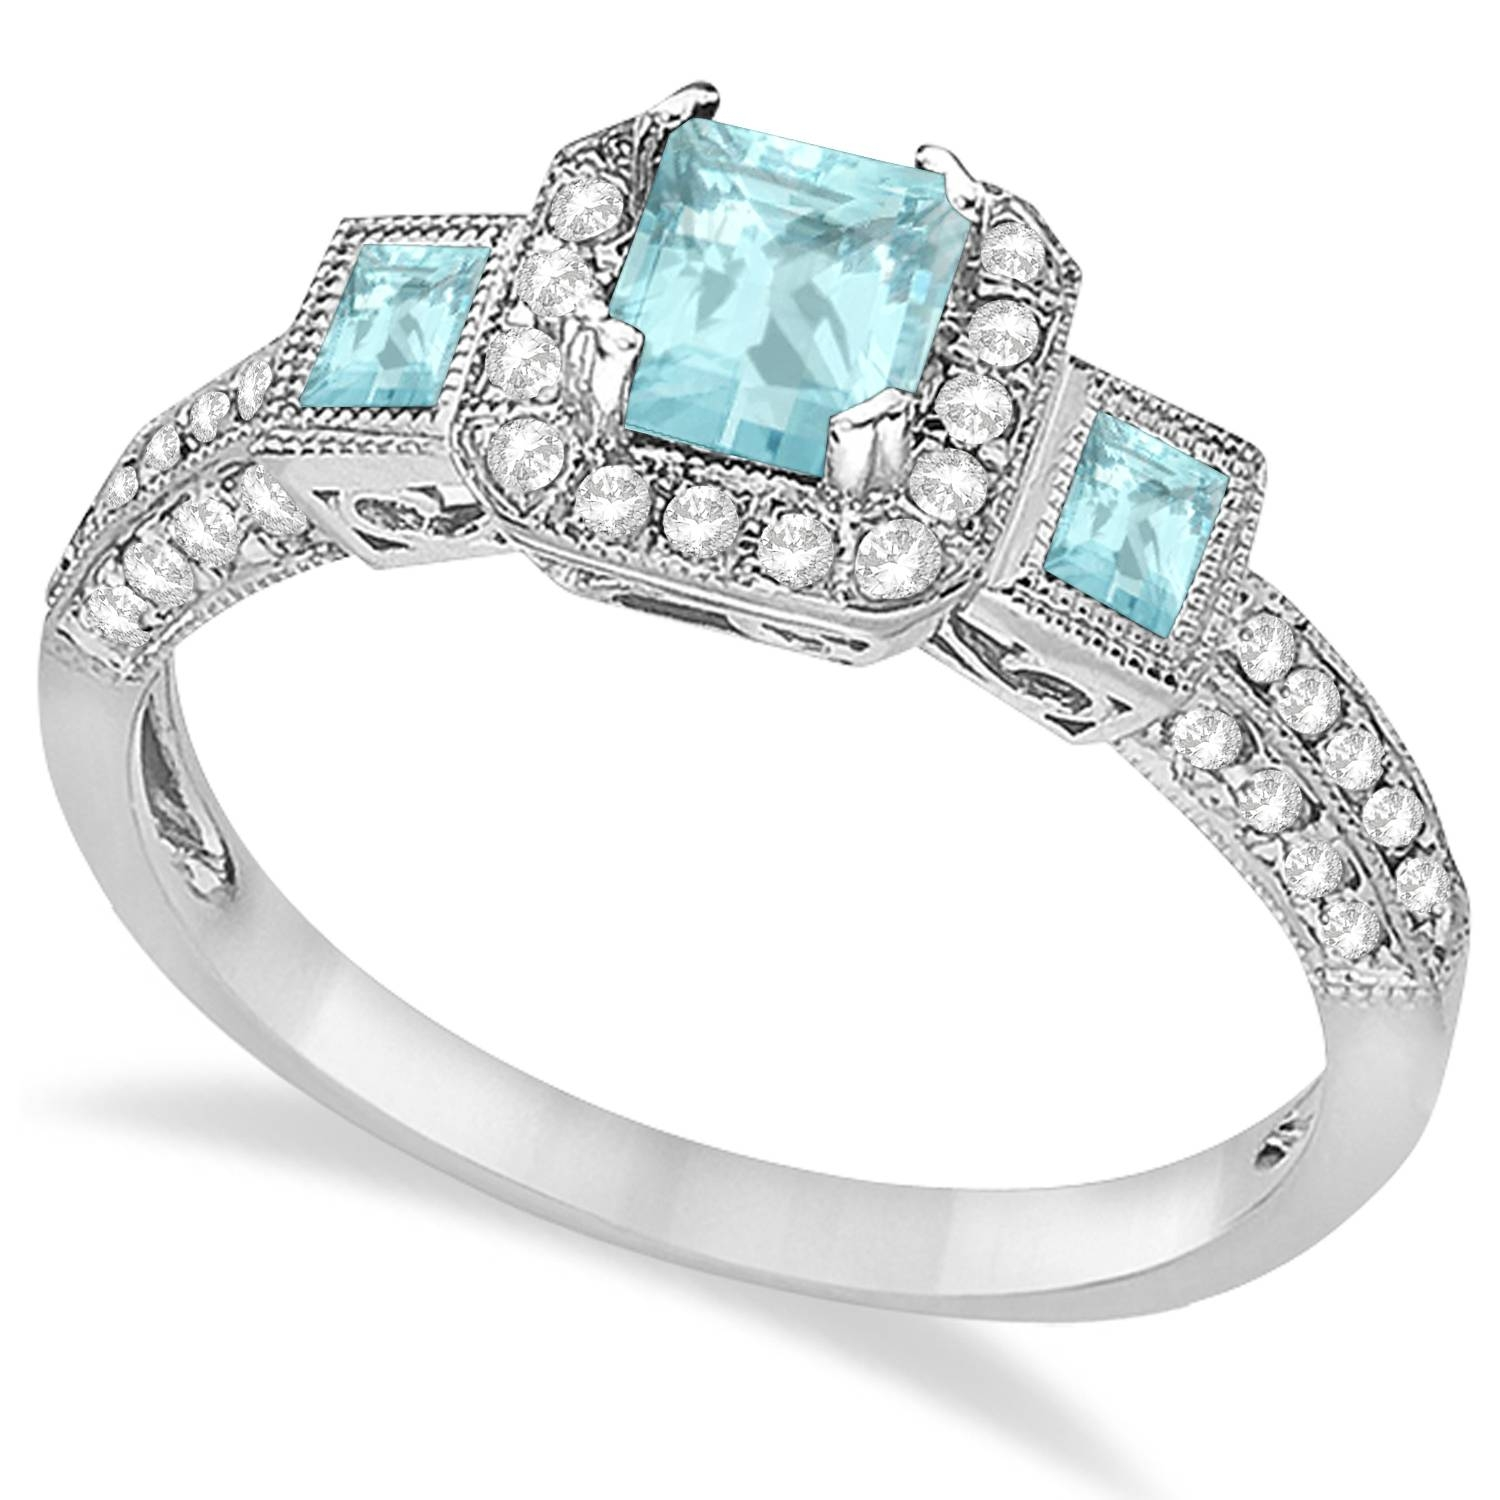 Aquamarine & Diamond Engagement Ring 14K White Gold (View 2 of 15)